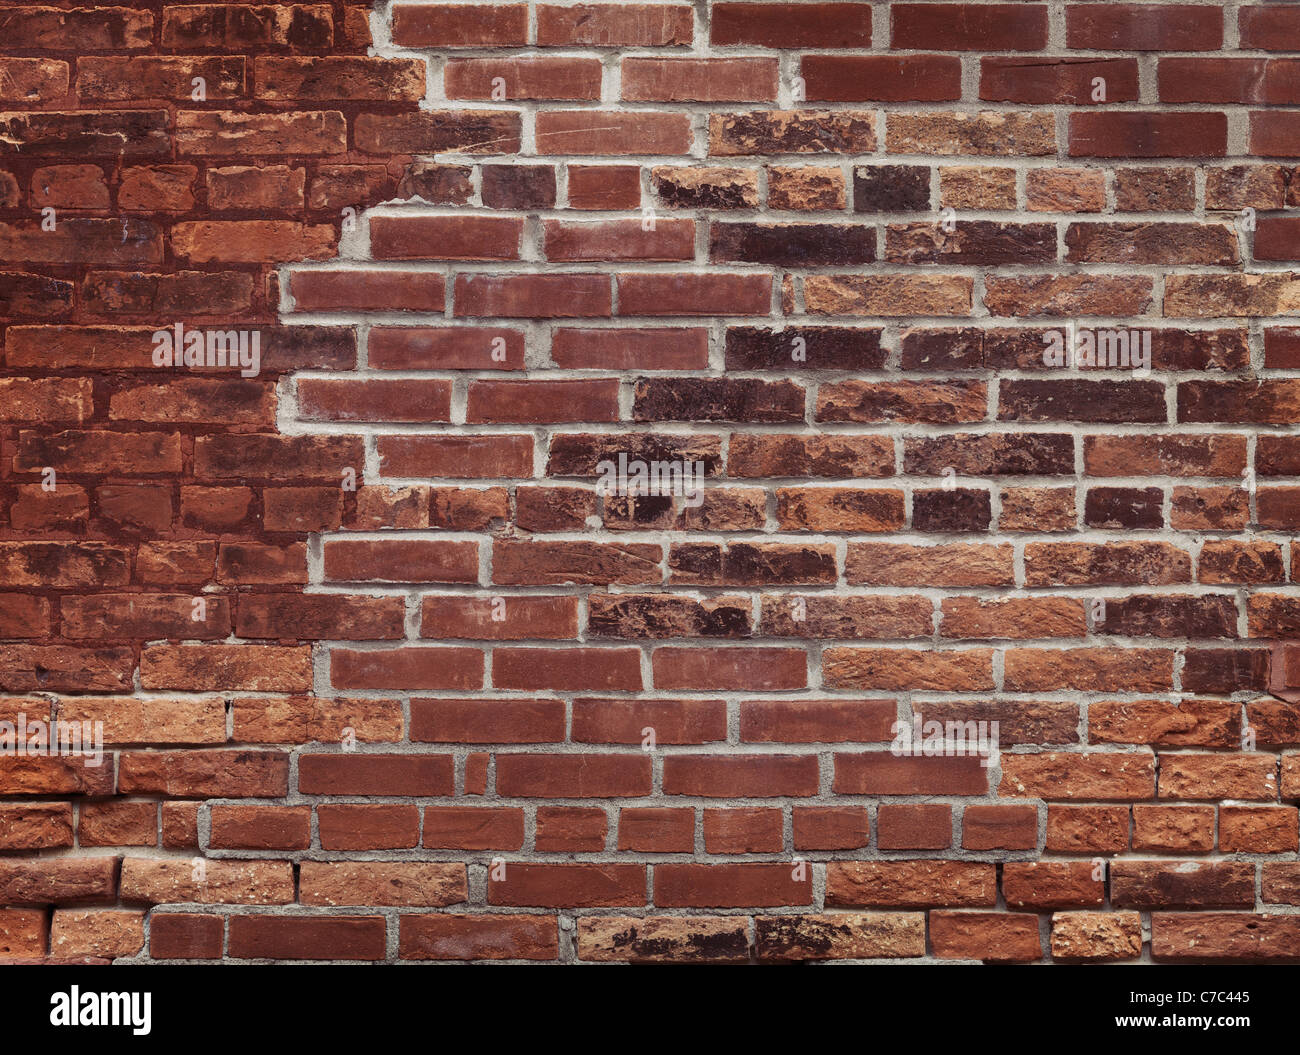 Old Red Brick Wall Texture Background High Resolution Quality Photo